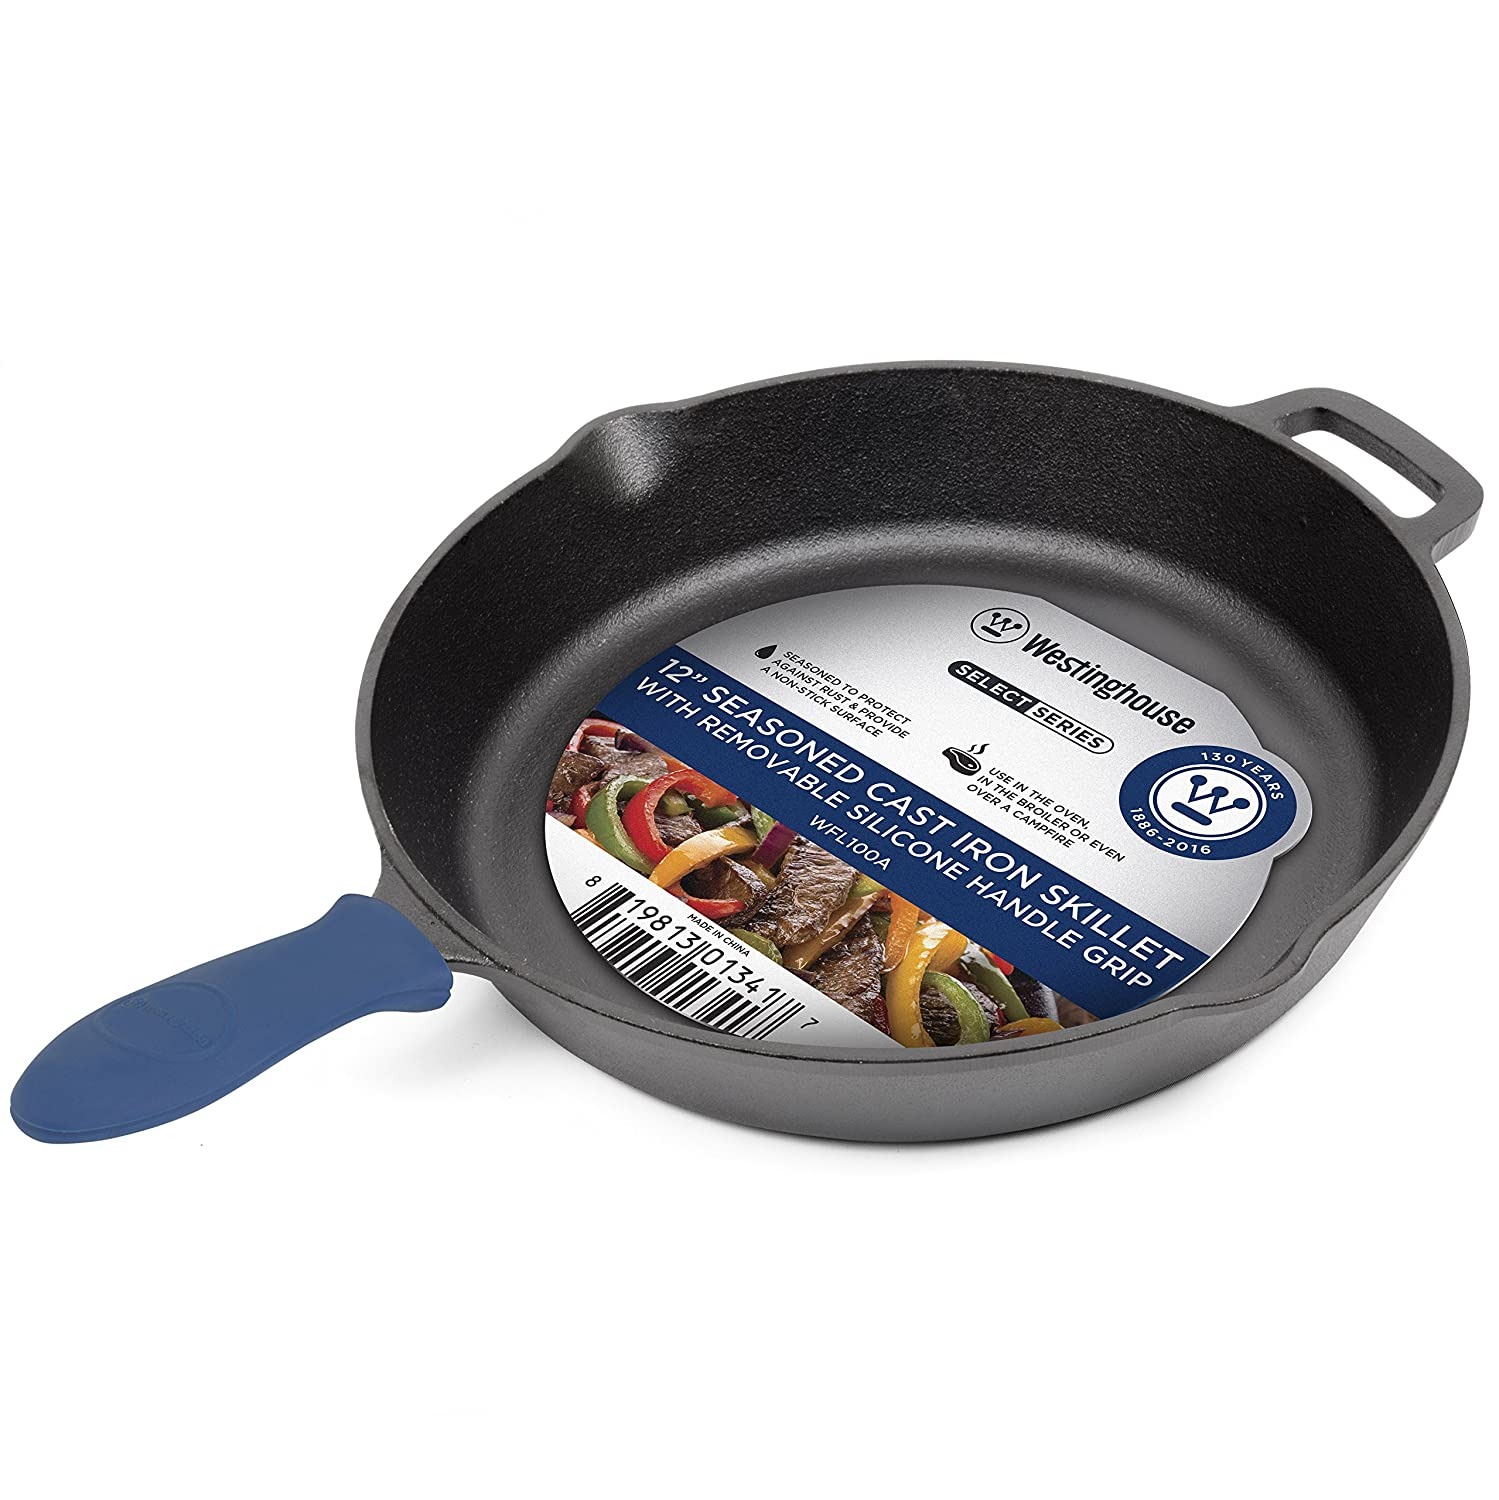 Westinghouse WFL100A Select Series Seasoned Cast Iron 12 Inch Skillet with Removable Silicone Handle Grip